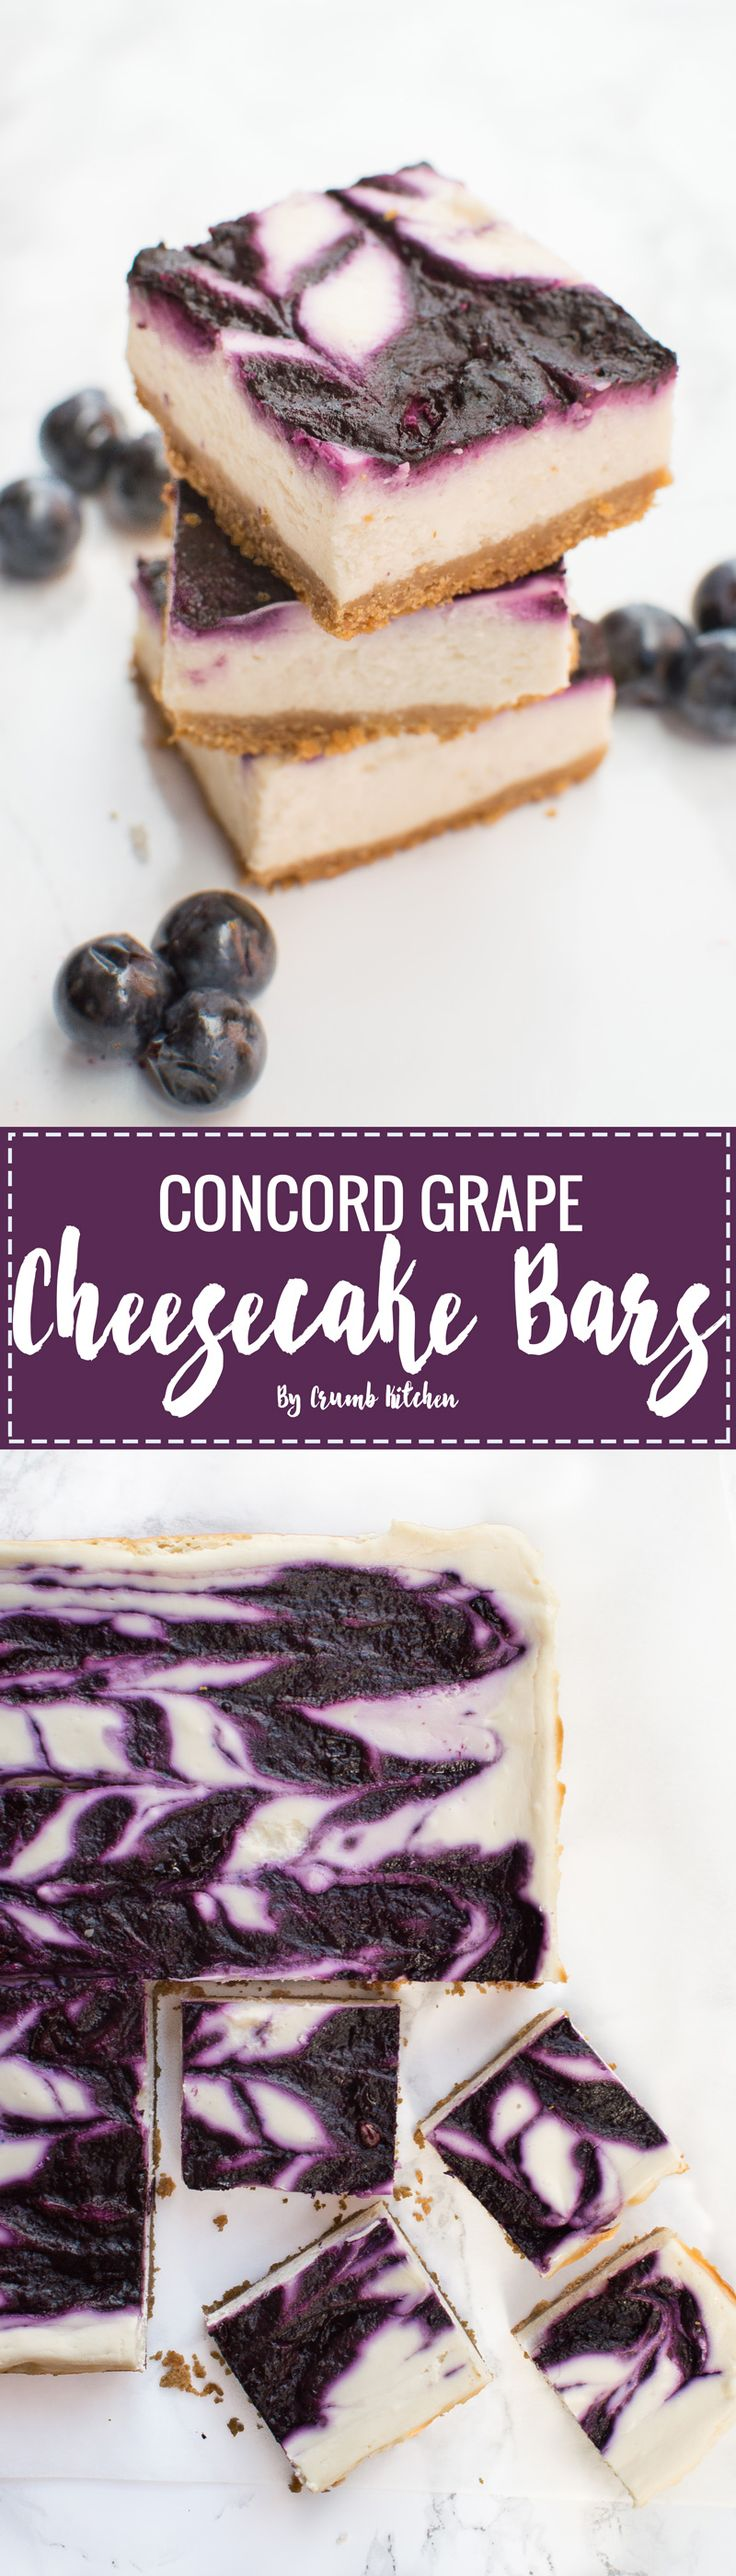 Fresh, sweet and tart concord grapes are made into the perfect fruit puree to top these creamy Concord Grape Cheesecake Bars. | Crumb Kitchen